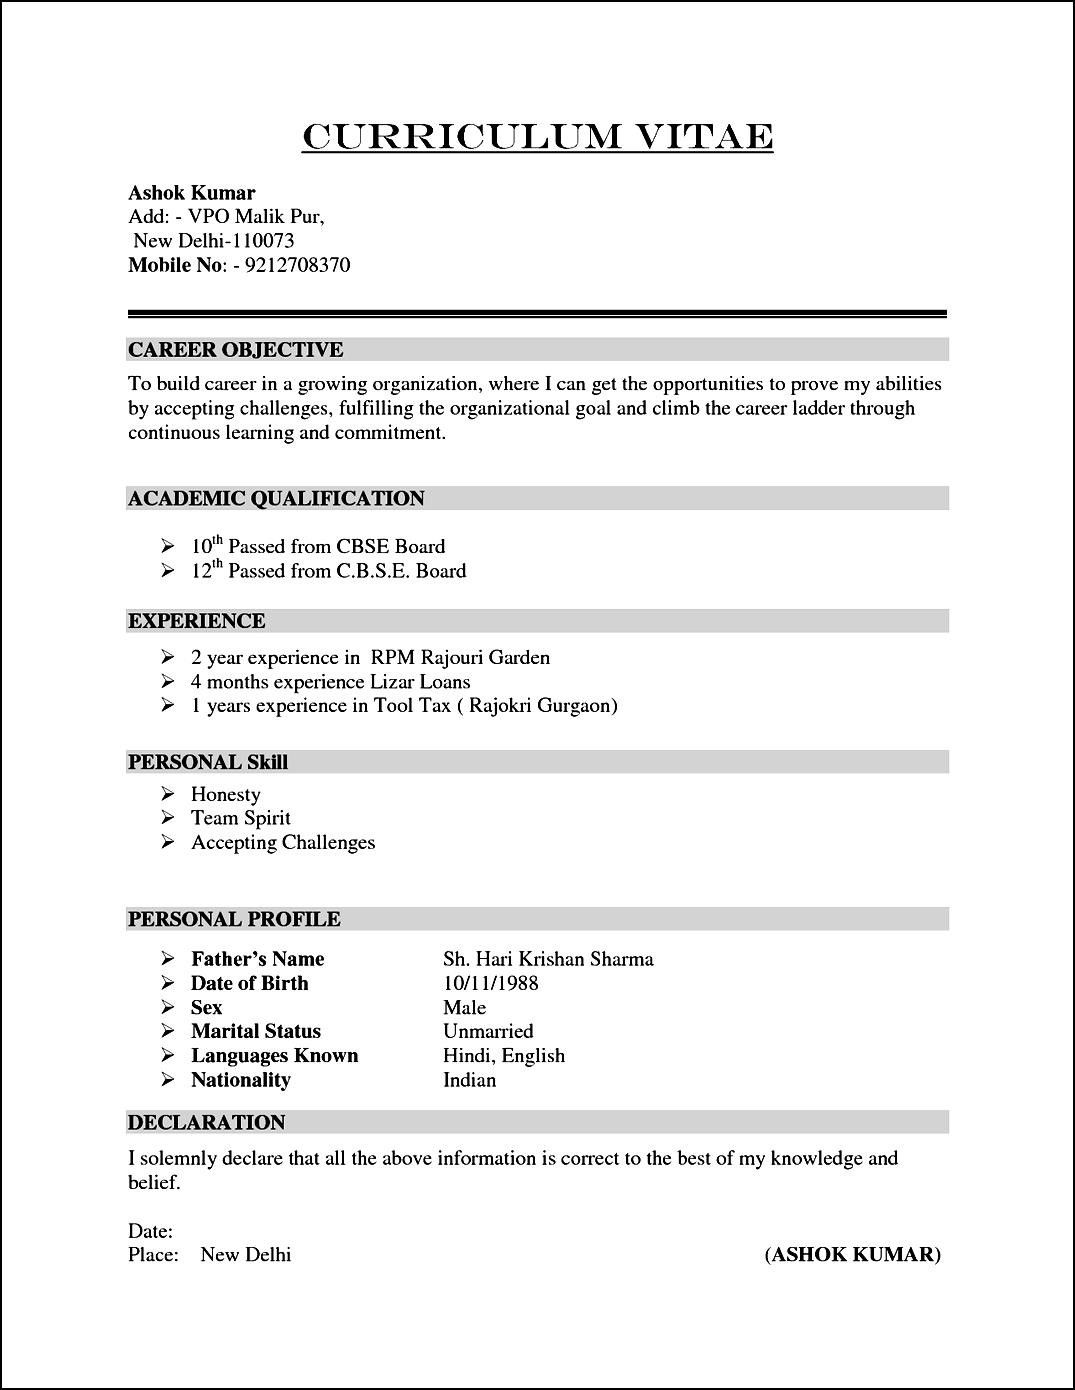 sample curriculum vitae resume for career objective with academic